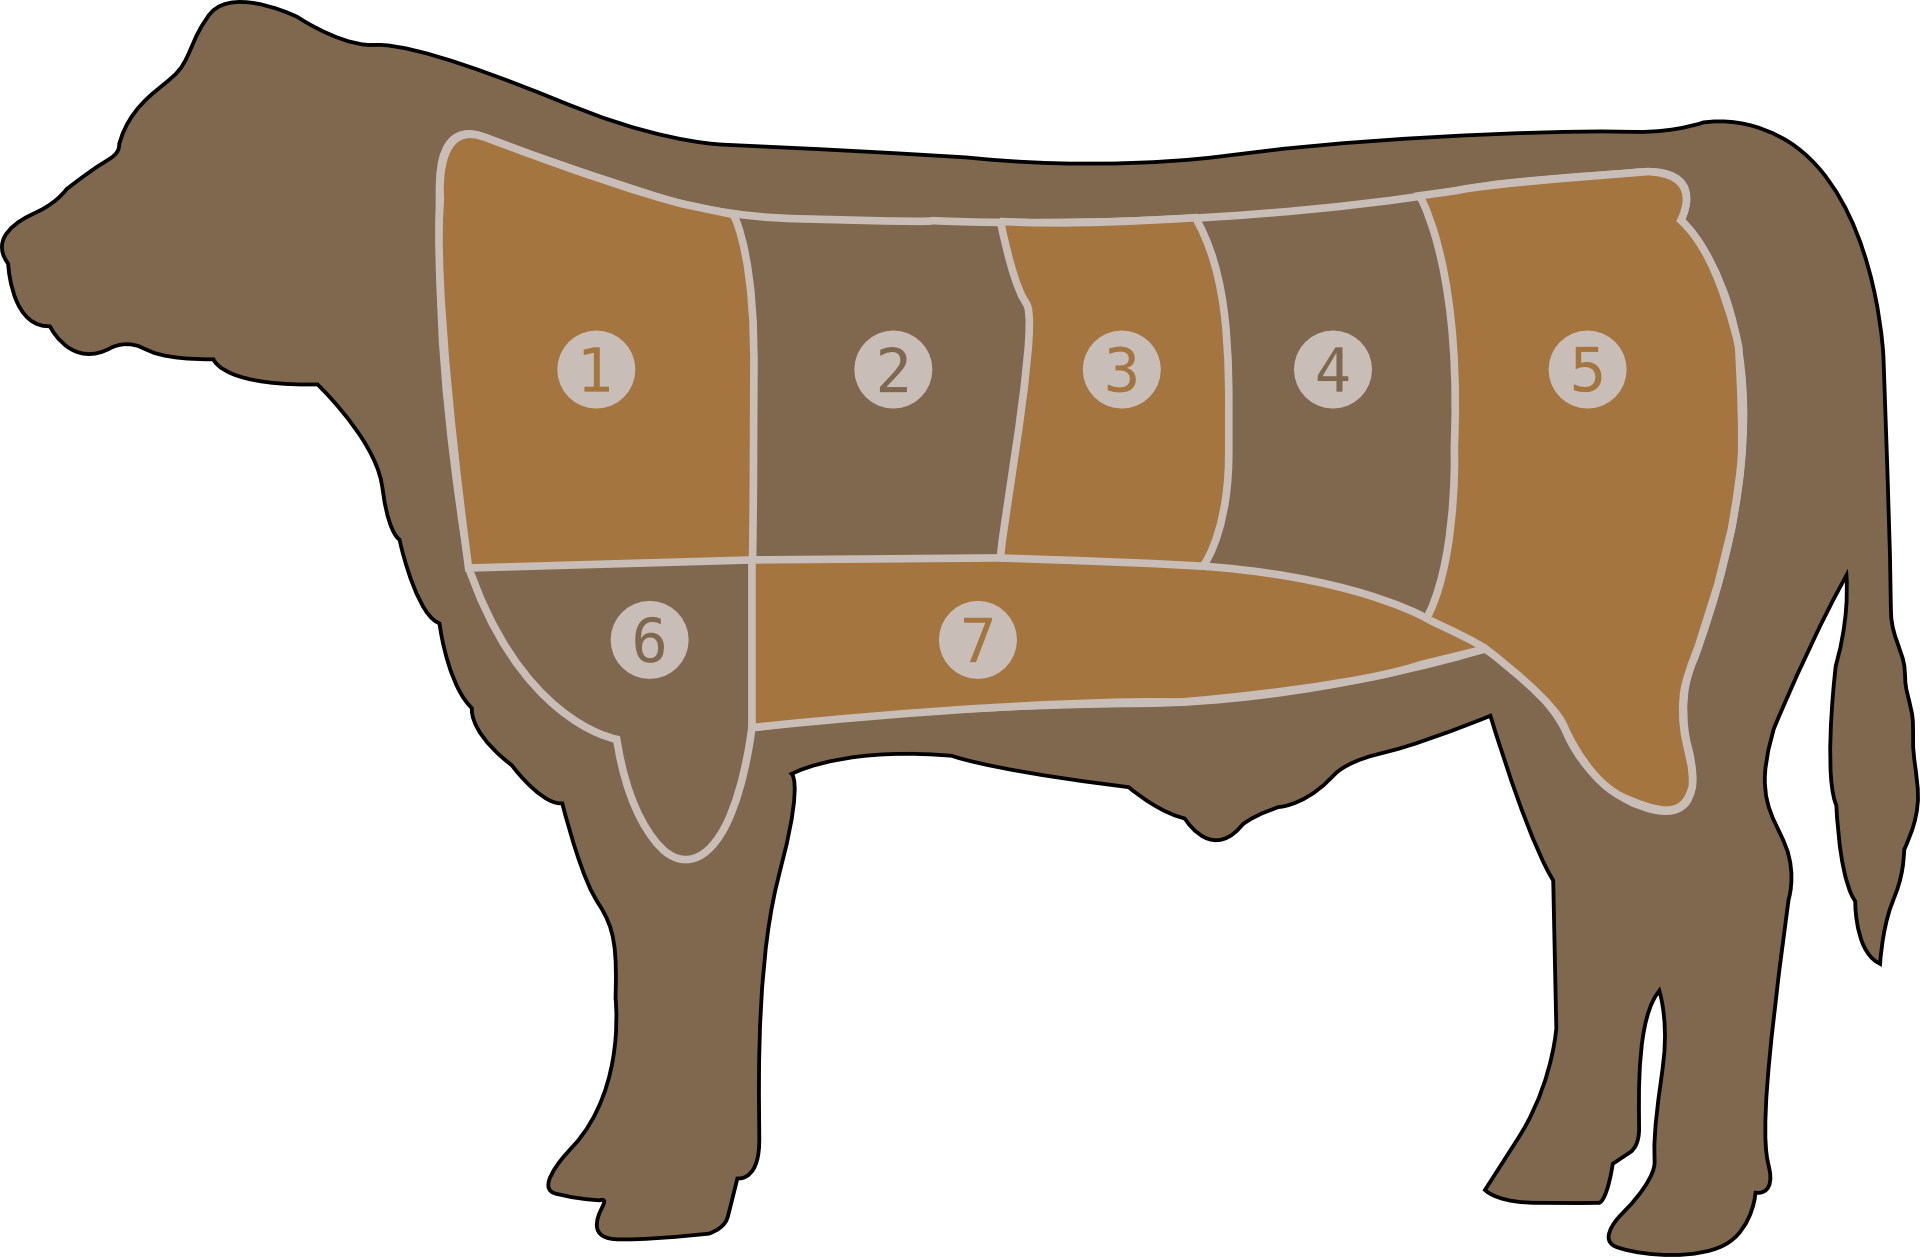 meat-chart-29043